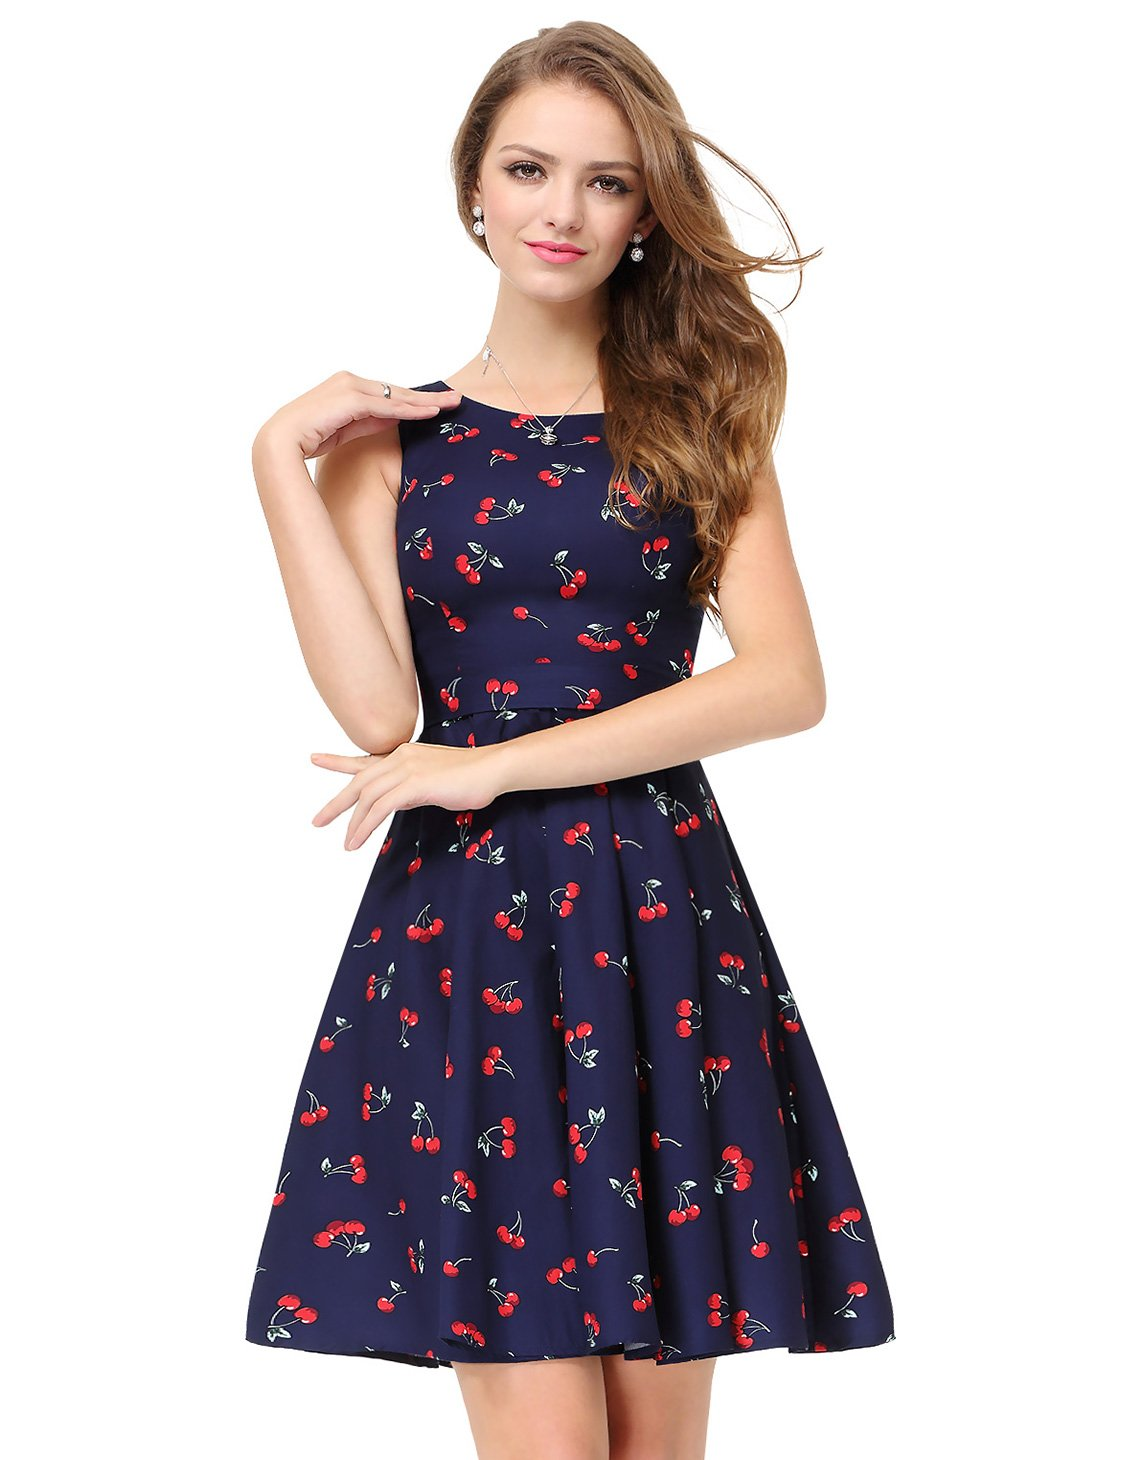 Alisapan Womens Round Neckline Printed Fit and Flare Graduation Party Dress 12 US Navy Blue